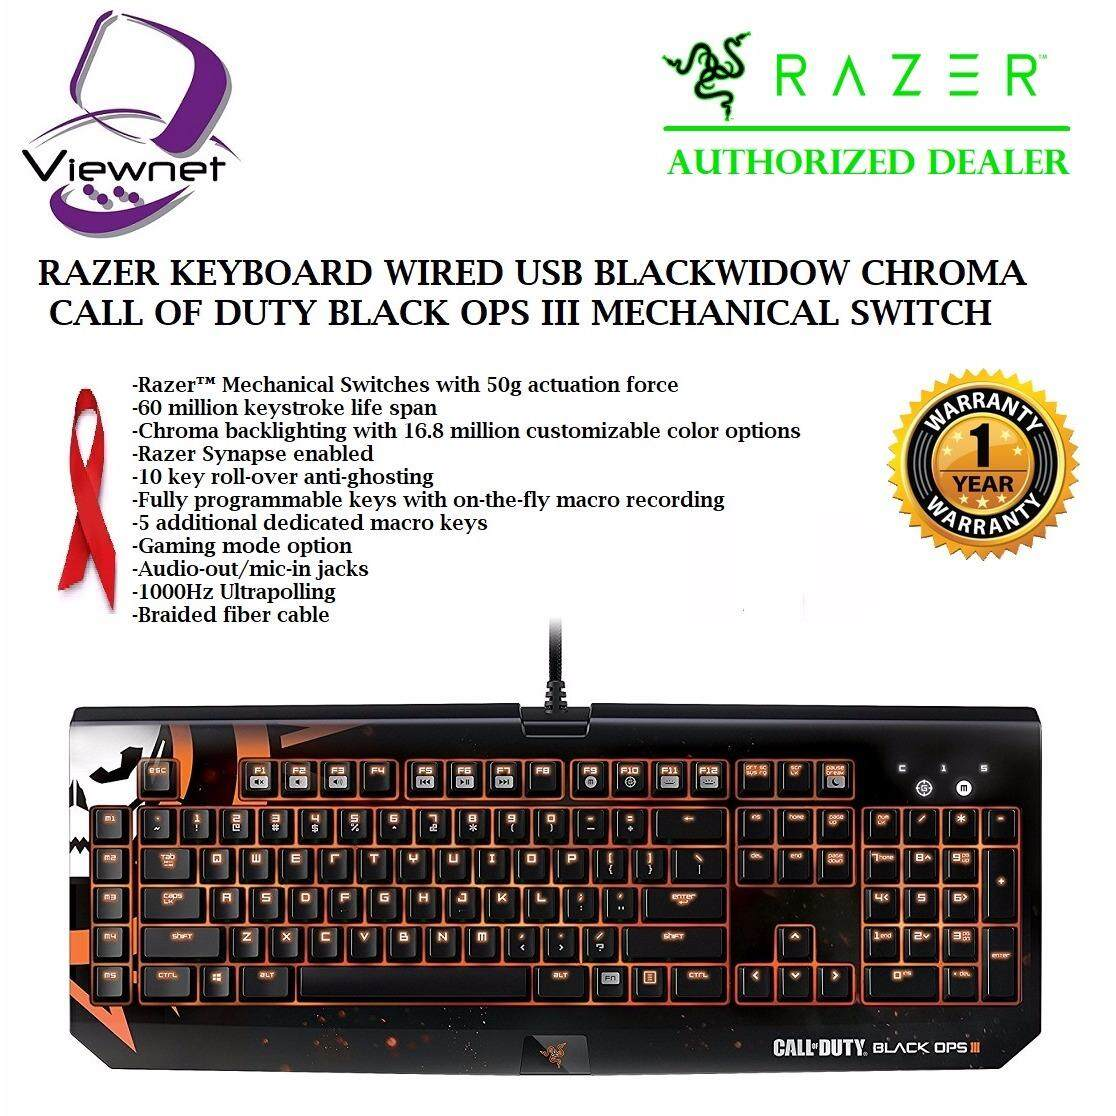 Sell Genuine Razer 8gb Cheapest Best Quality My Store Turret Living Room Gaming Mouse And Lapboard Rz84 01330100 B3a1 Myr 729